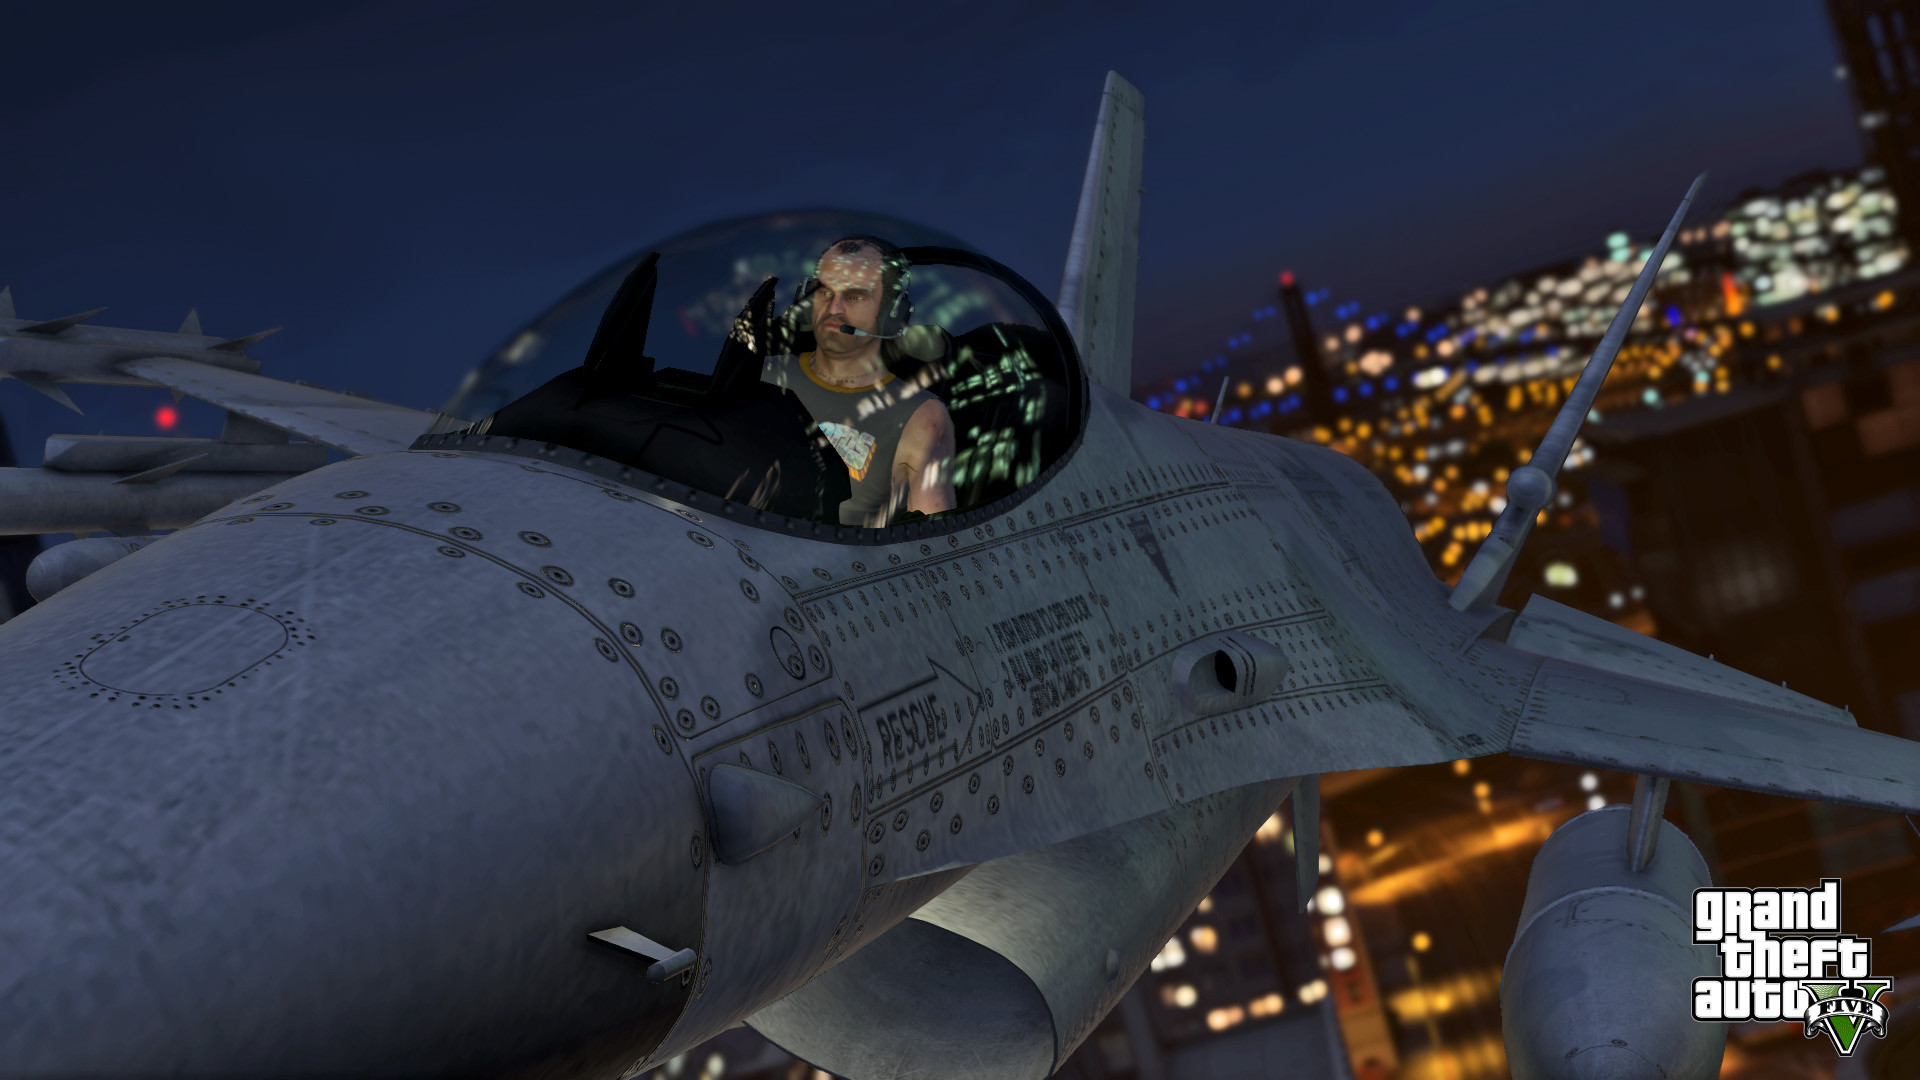 Independence Day GTA Online Sale Offers Discounts and Bonuses